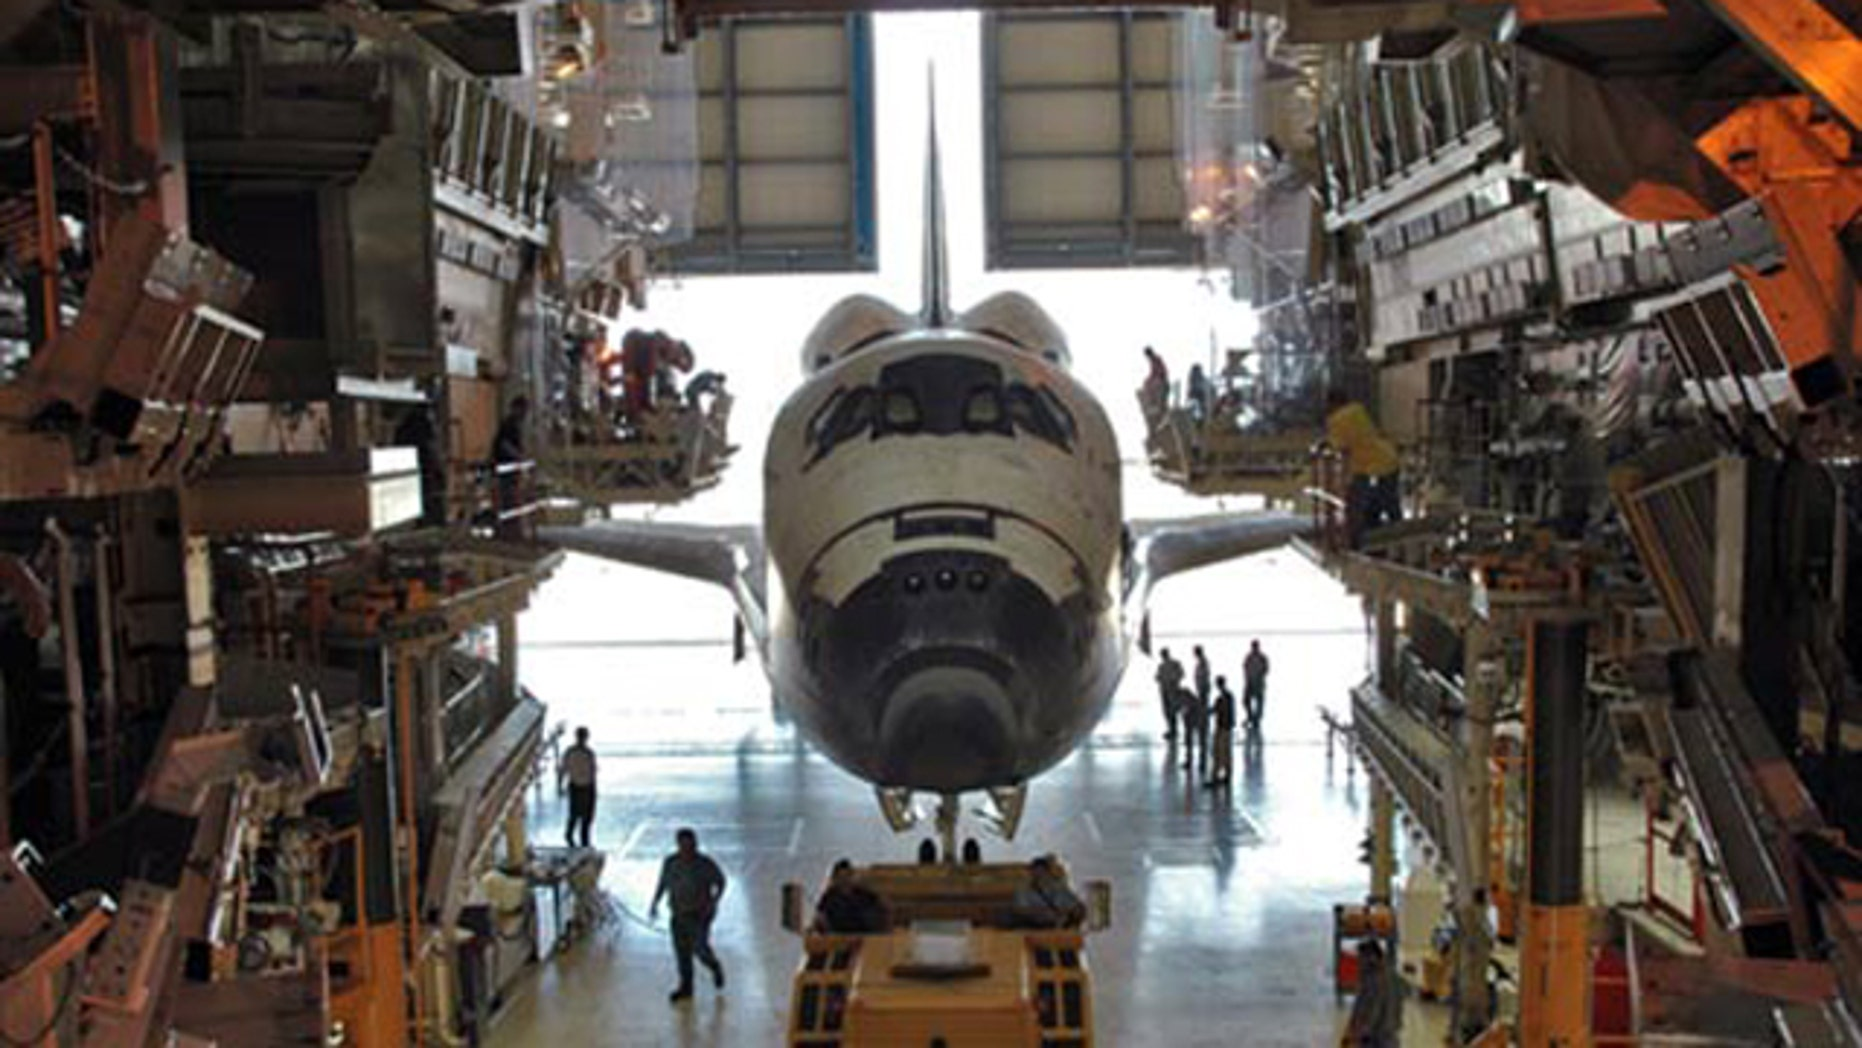 The space shuttle Discovery is shown inside its Orbital Processing Facility, a maintenance hangar used to service the spacecraft in between spaceflights, in this 2005 photo.